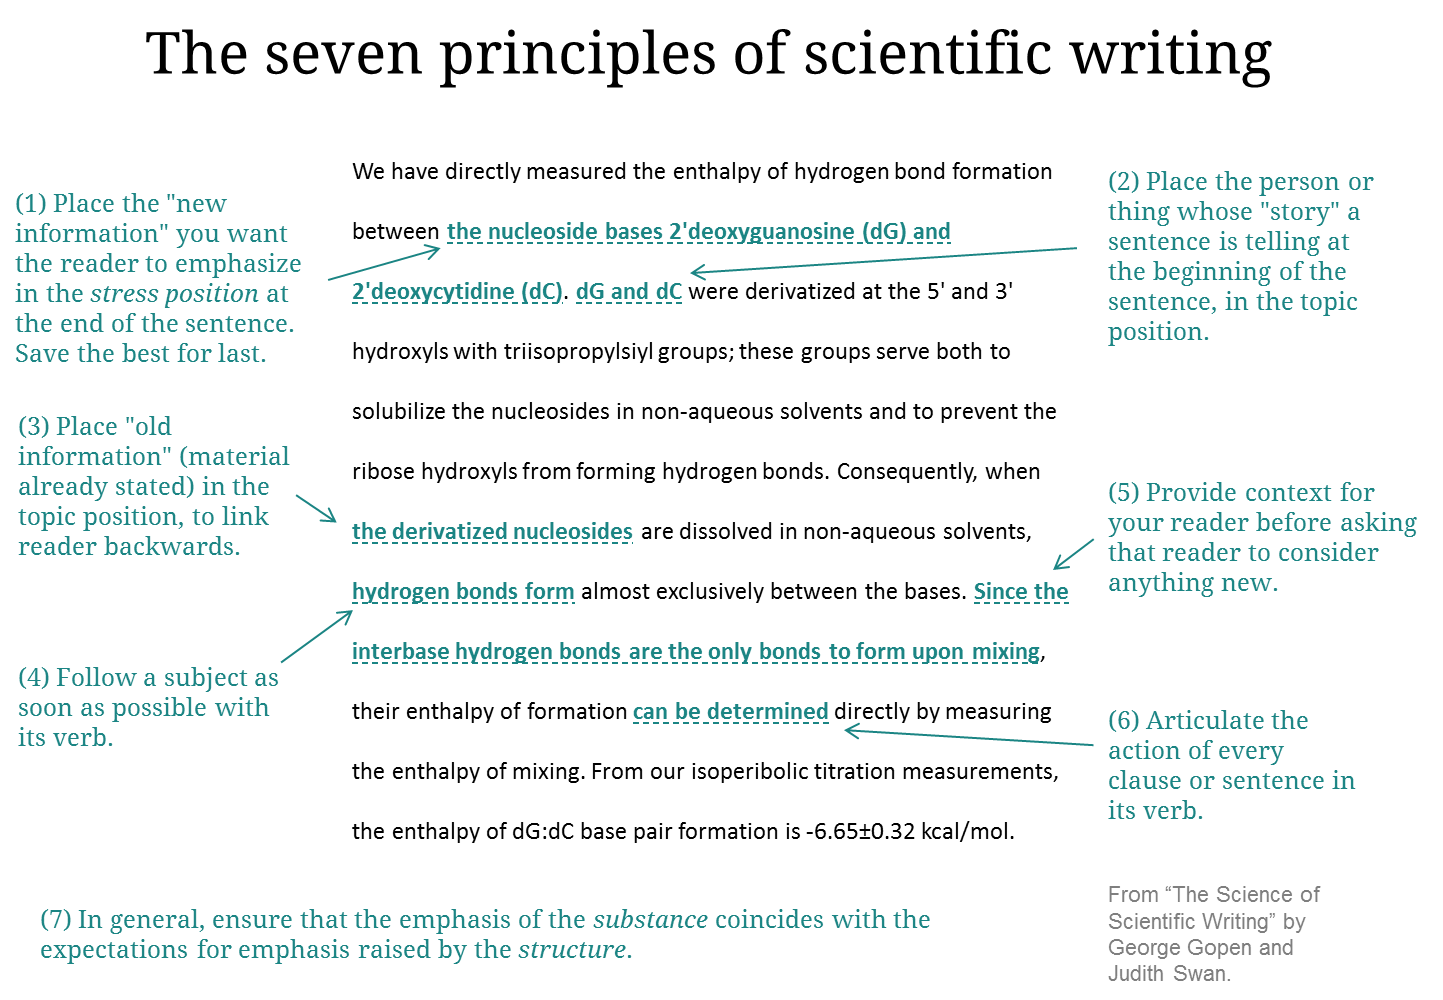 scientific paper writing tips The paper what's the purpose of an introduction in scientific writing tips for writing a discussion section this is the place to interpret your results against a background of existing knowledge explain what is new in your work.